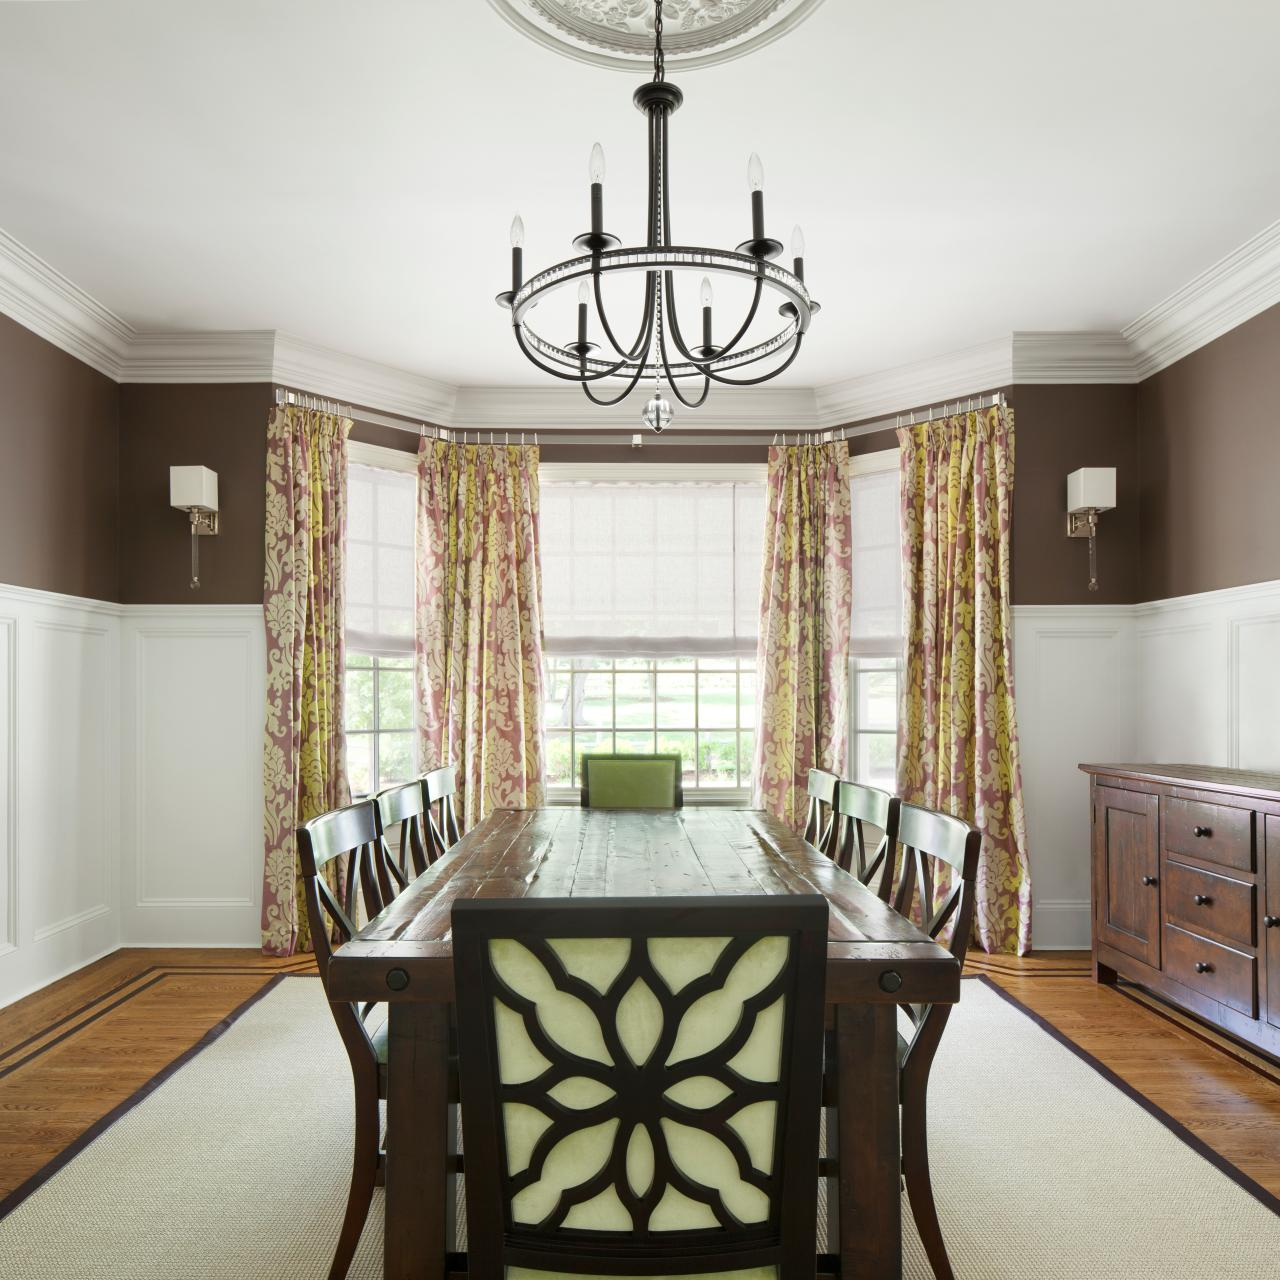 window treatment ideas for bay windows in living room argos furniture sets 10 treatments to ponder your panes